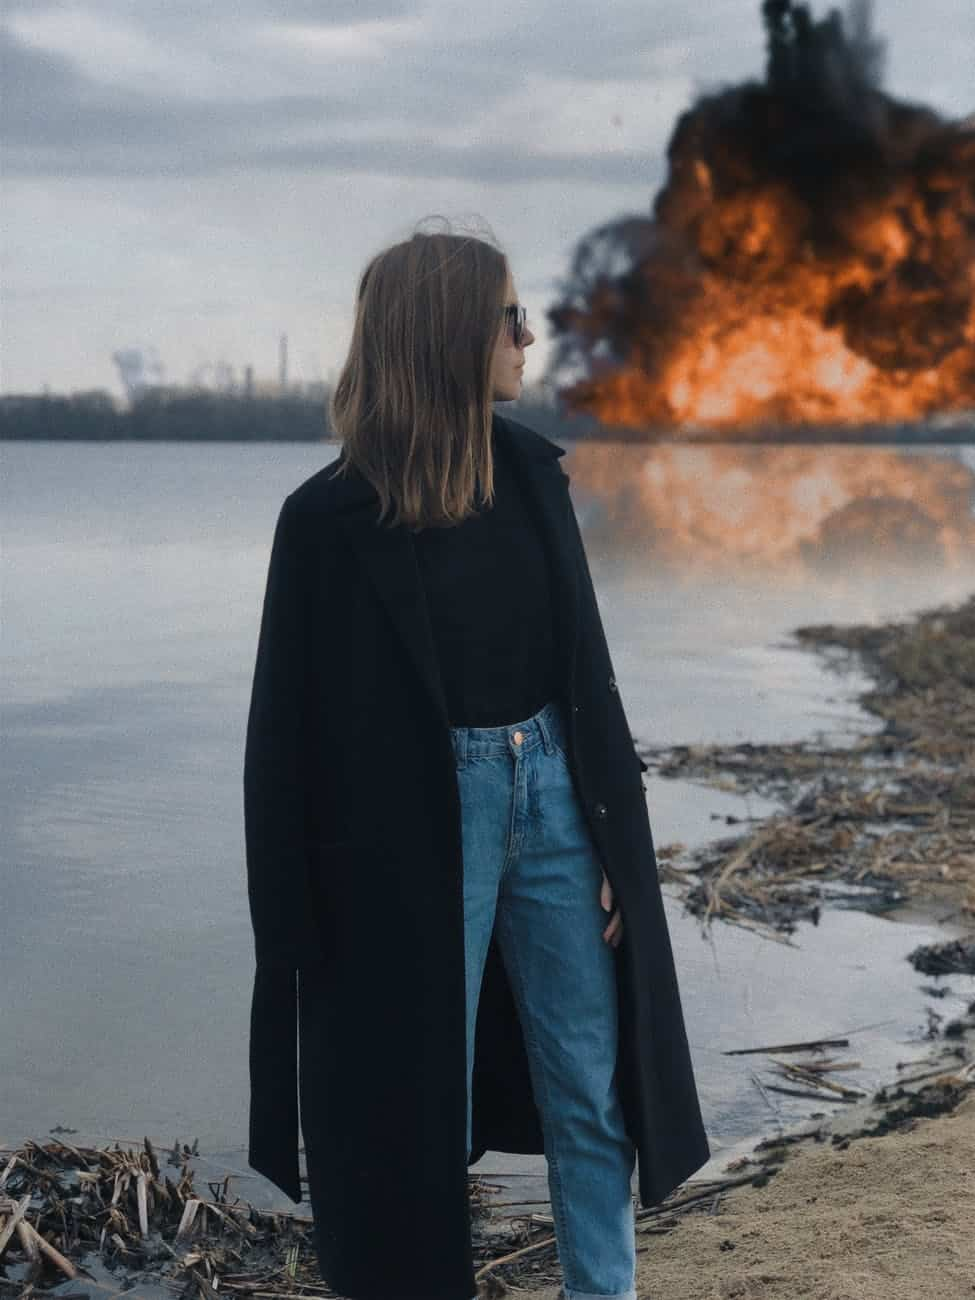 Boom woman in black coat standing near body of water